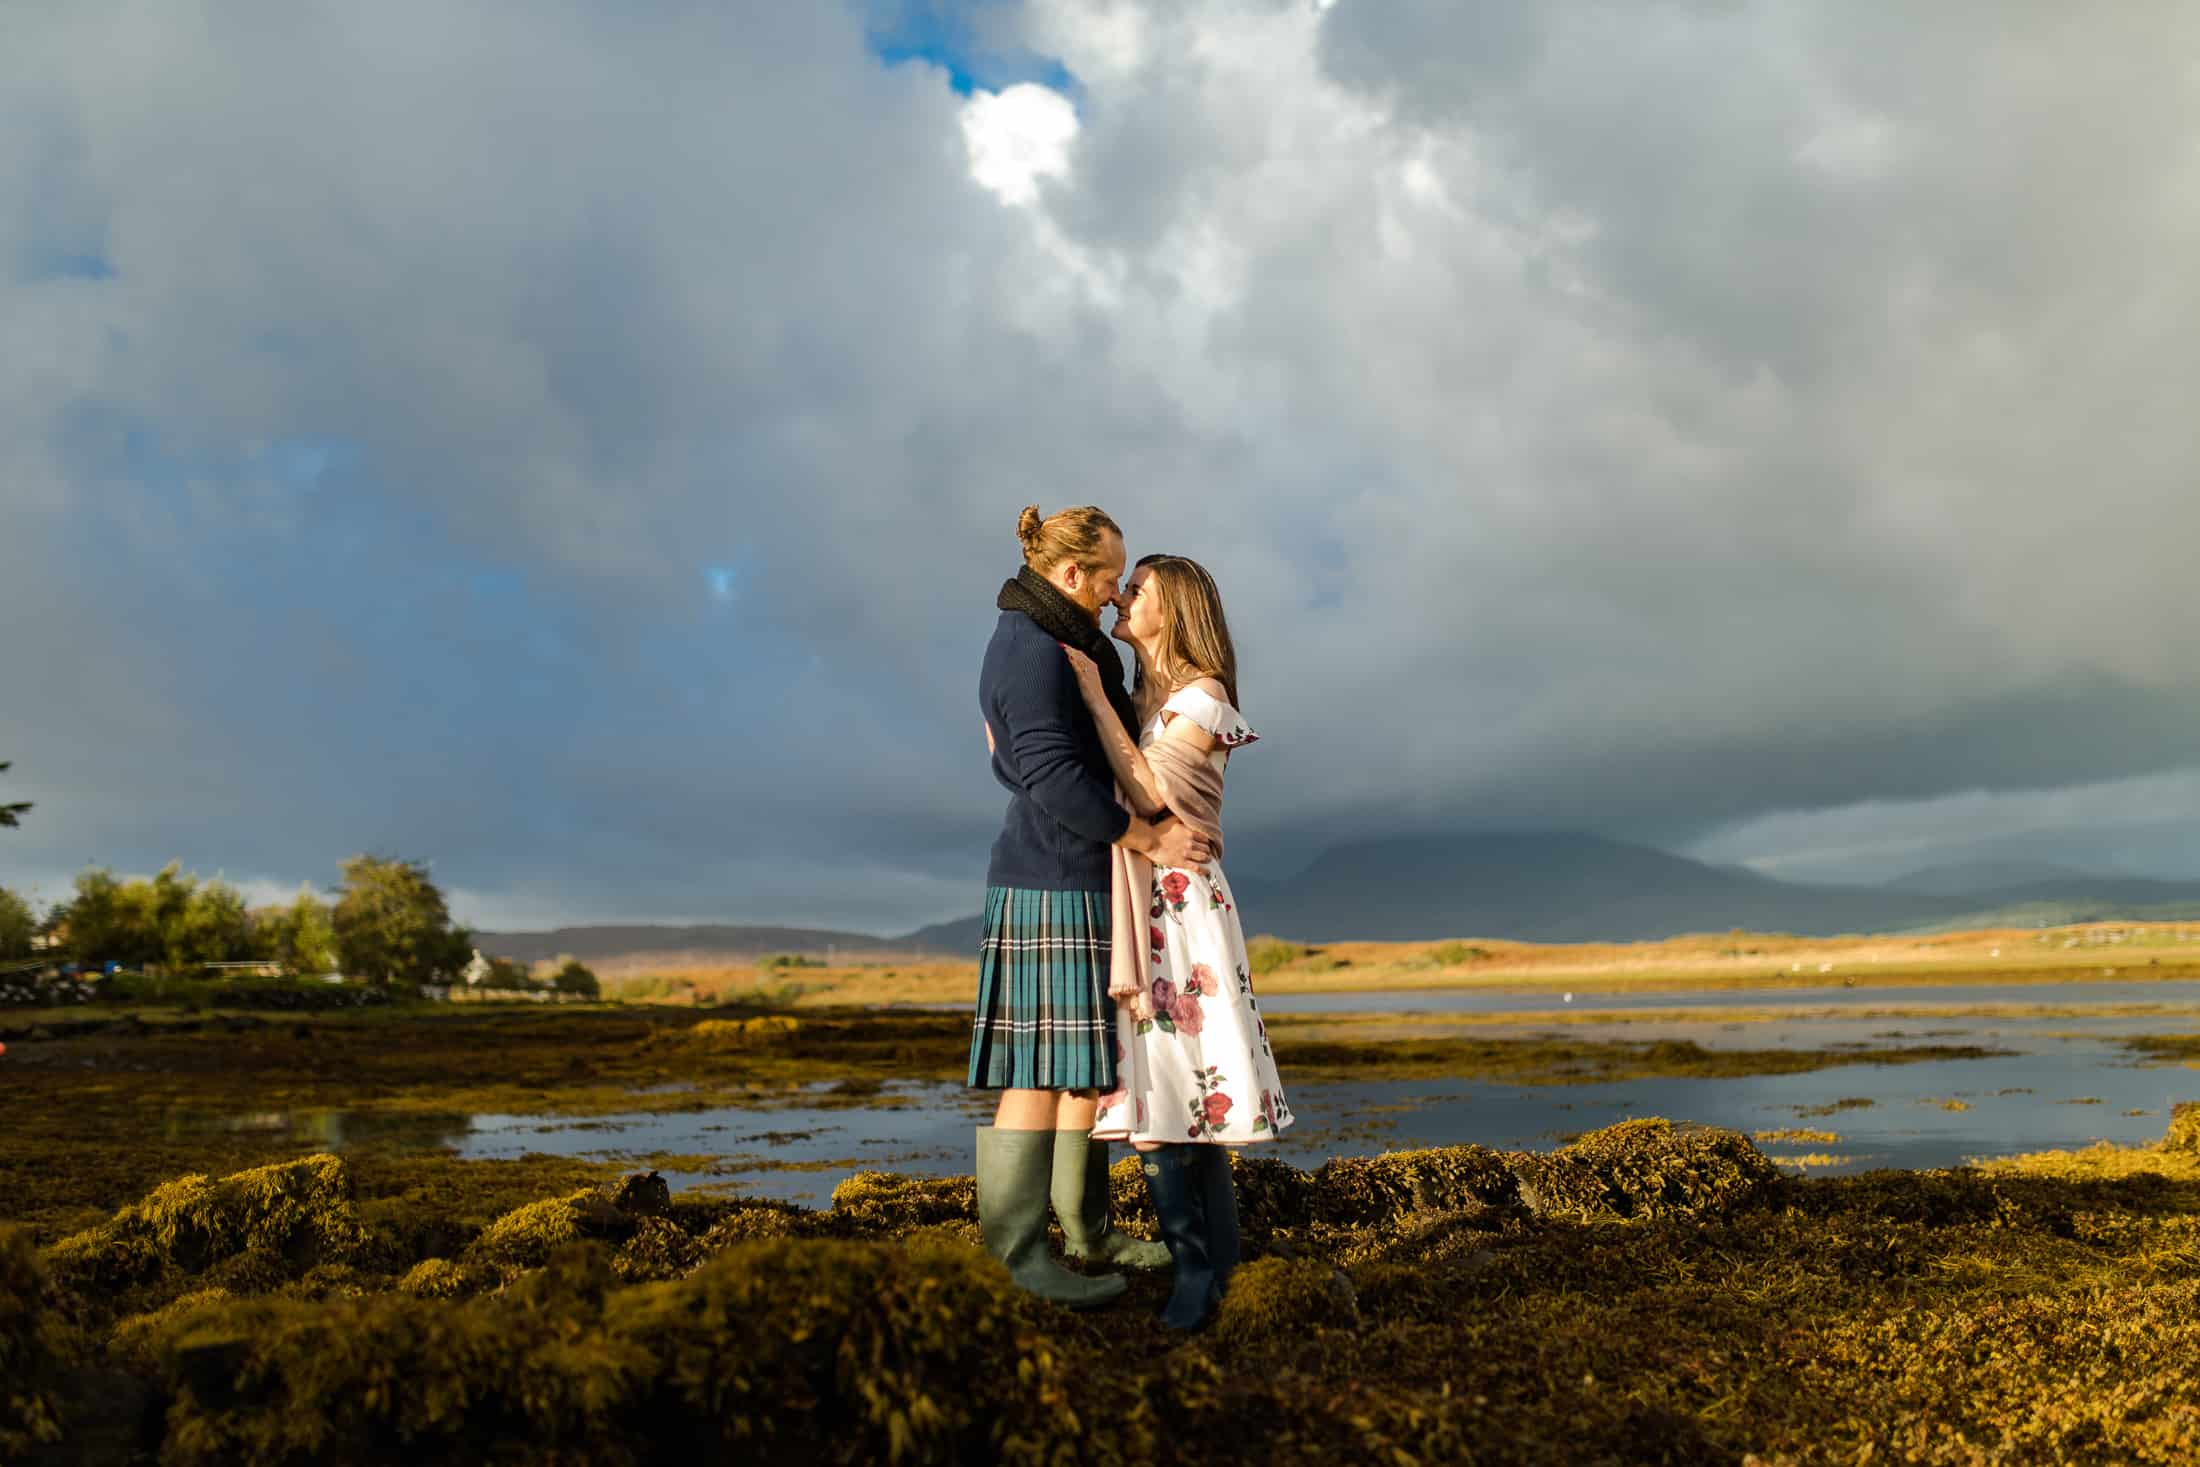 Engagement photoshoot on beach with mountains Isle of skye